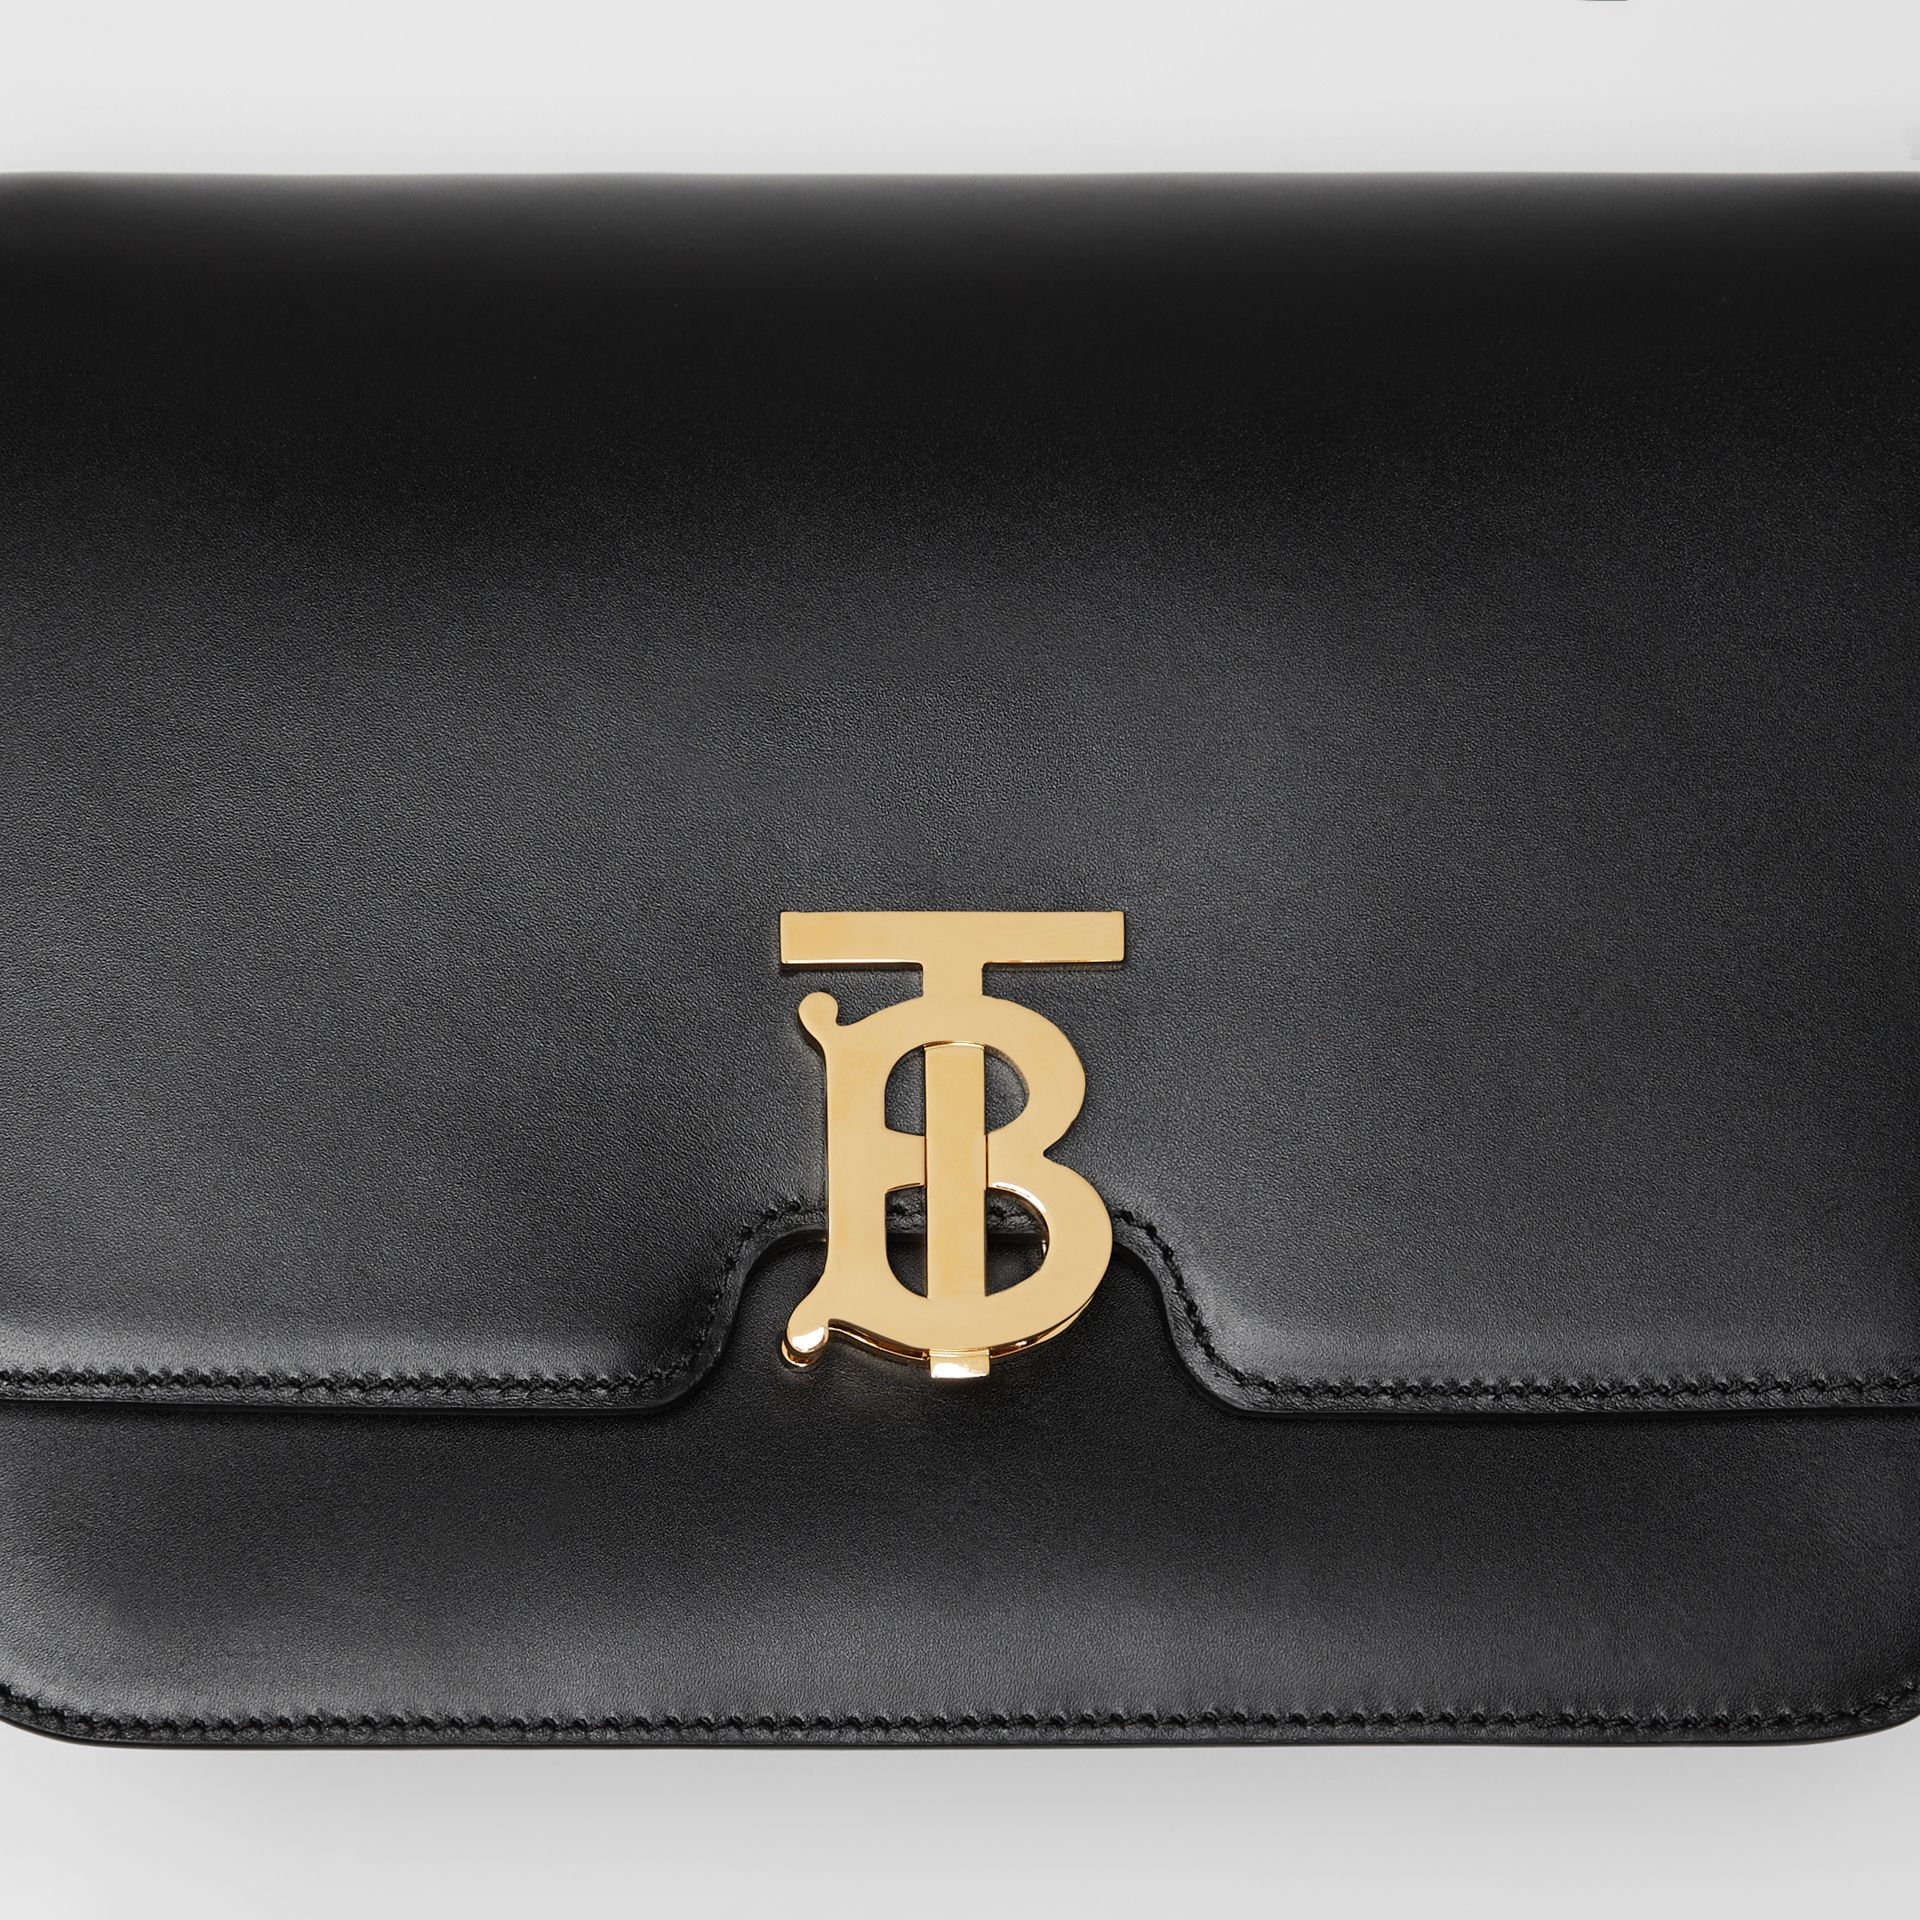 Leather TB Bag in Black - Women | Burberry - gallery image 1